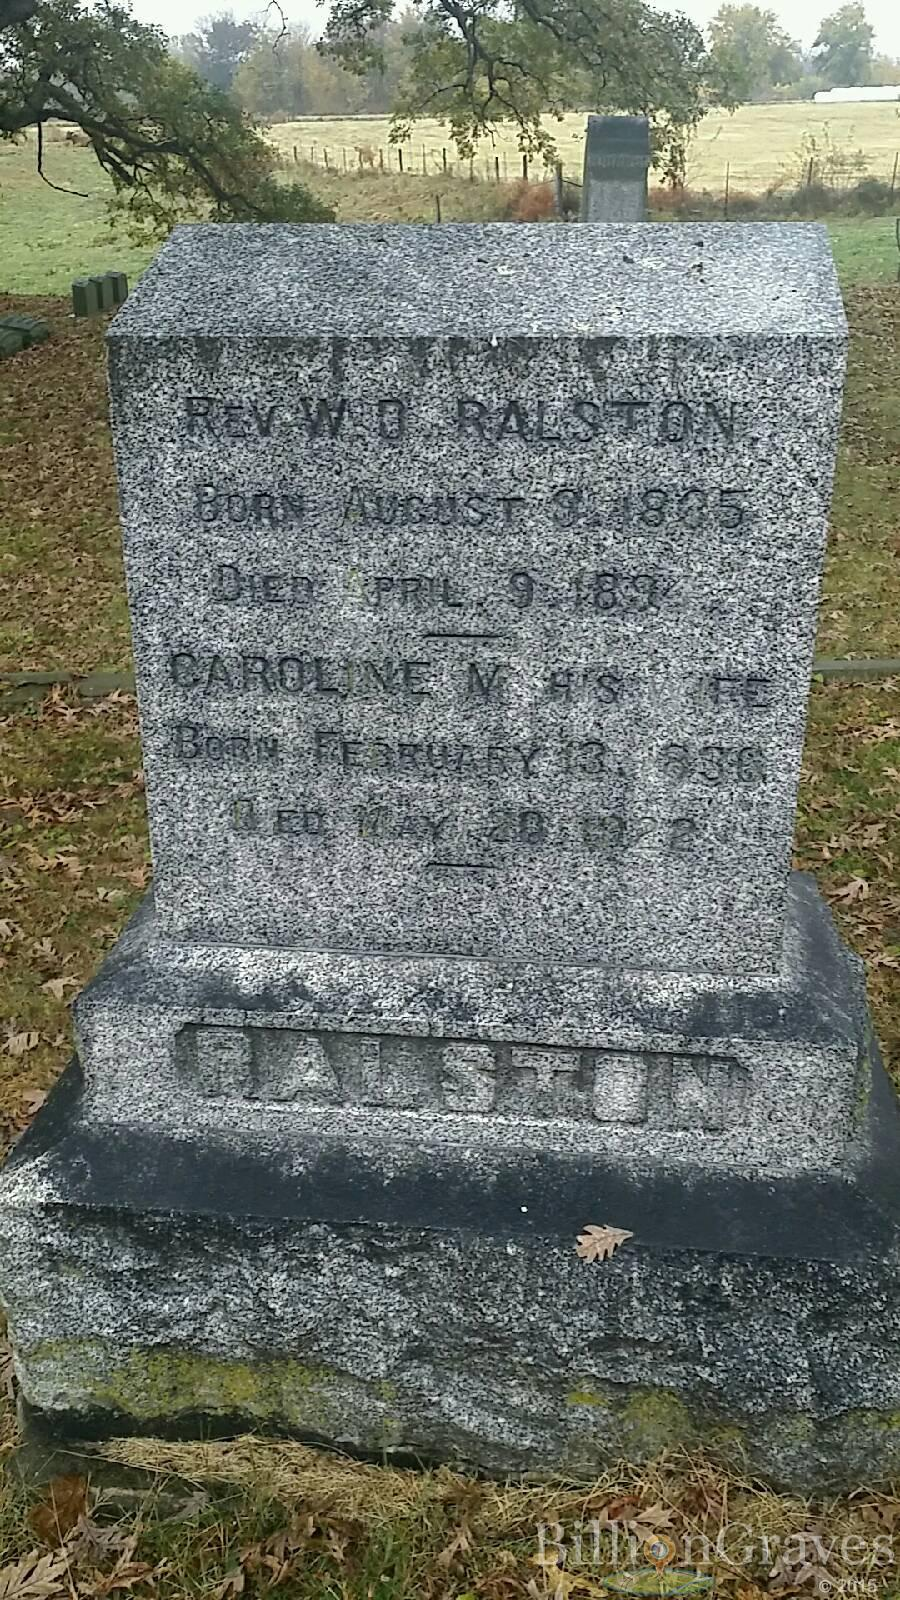 William David Ralston is buried at Oakland Cemetery, Warsaw, Illinois.